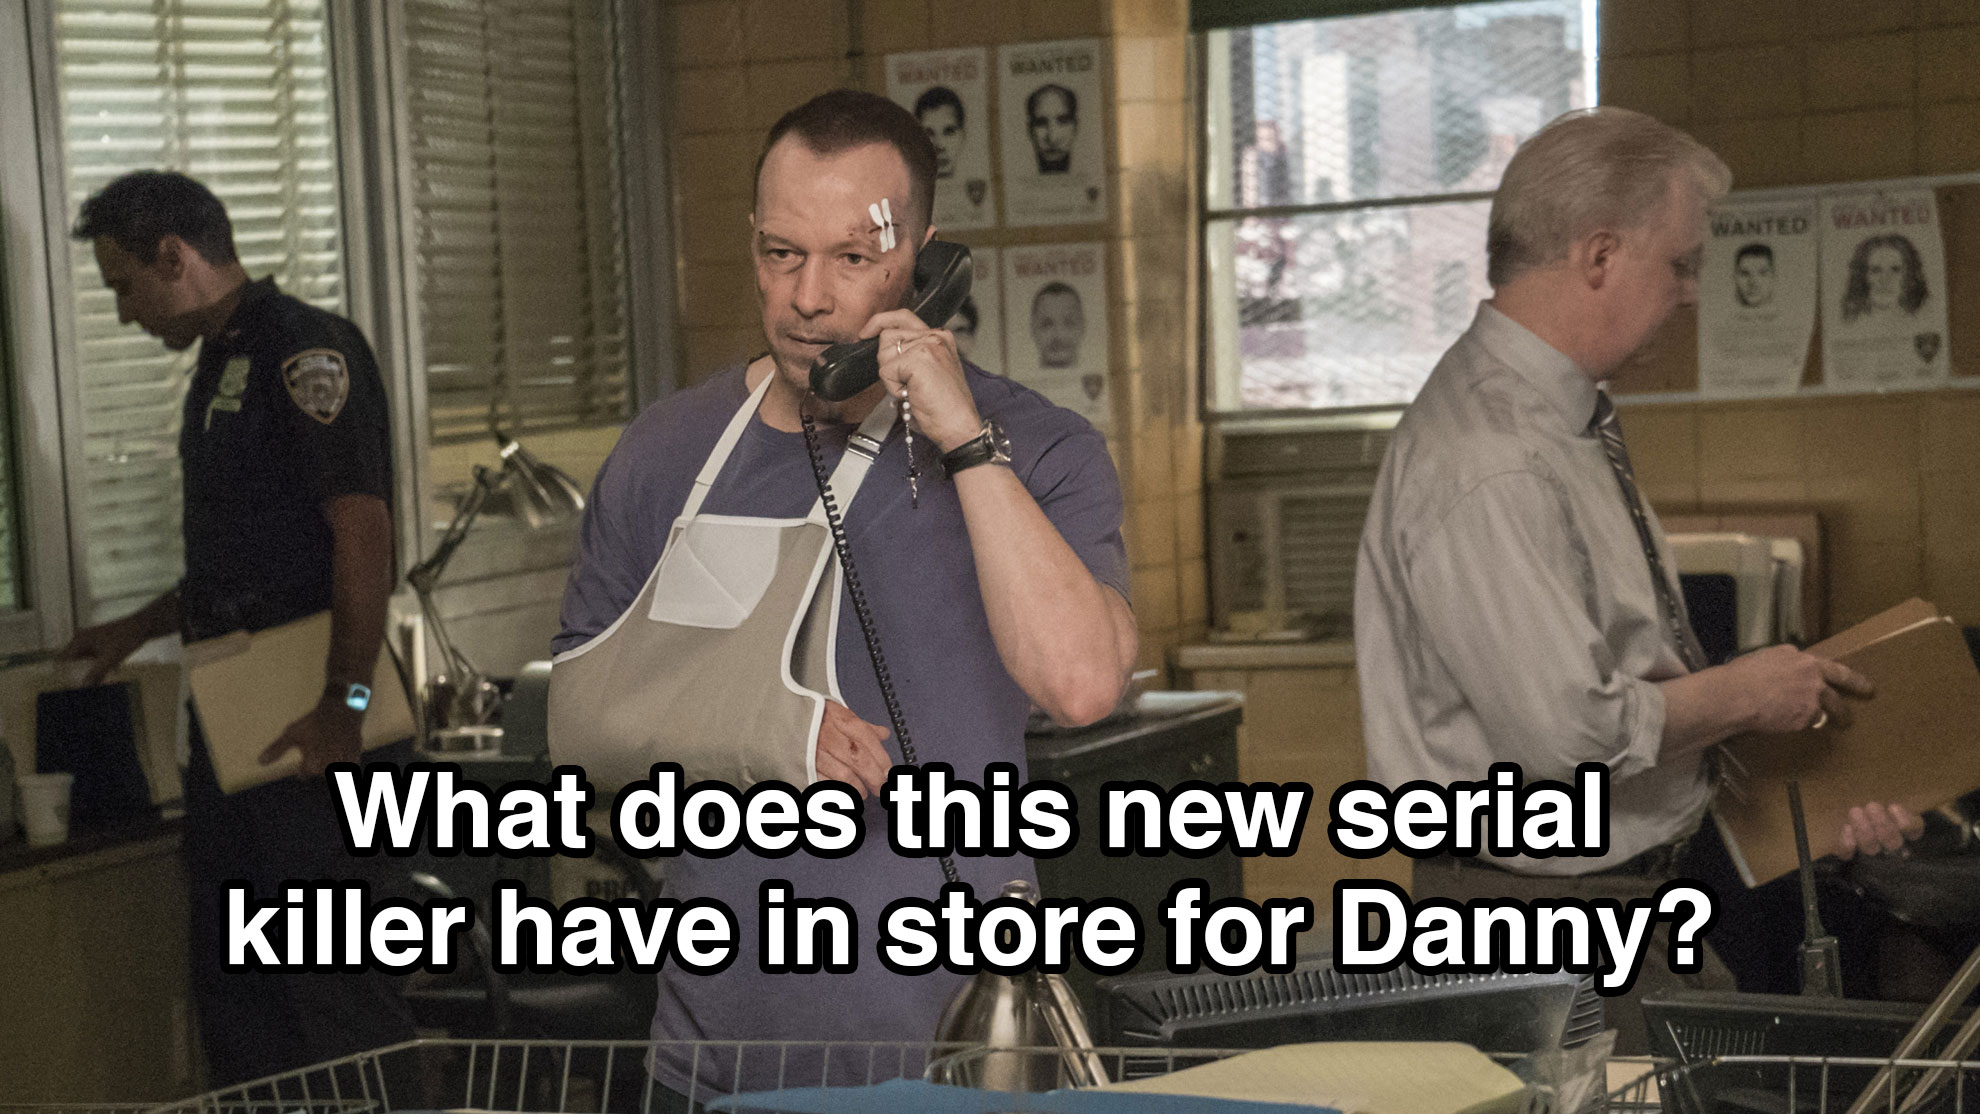 What does the new serial killer have in store for Danny?